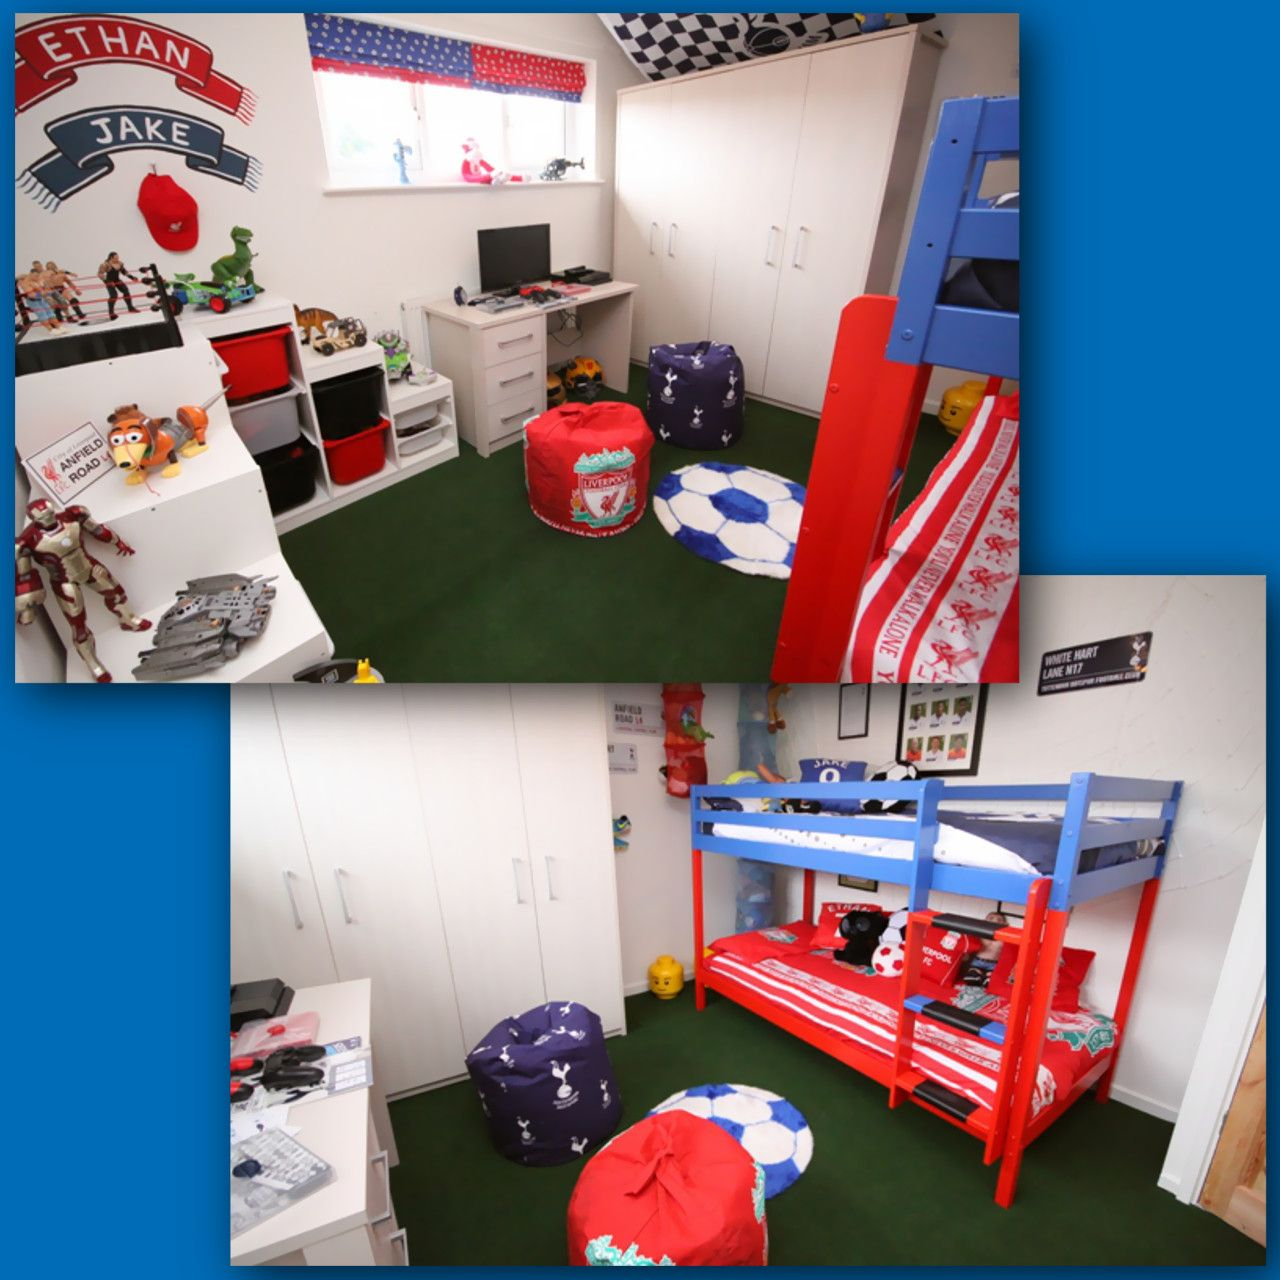 Ethan wished for a footballthemed bedroom makeover